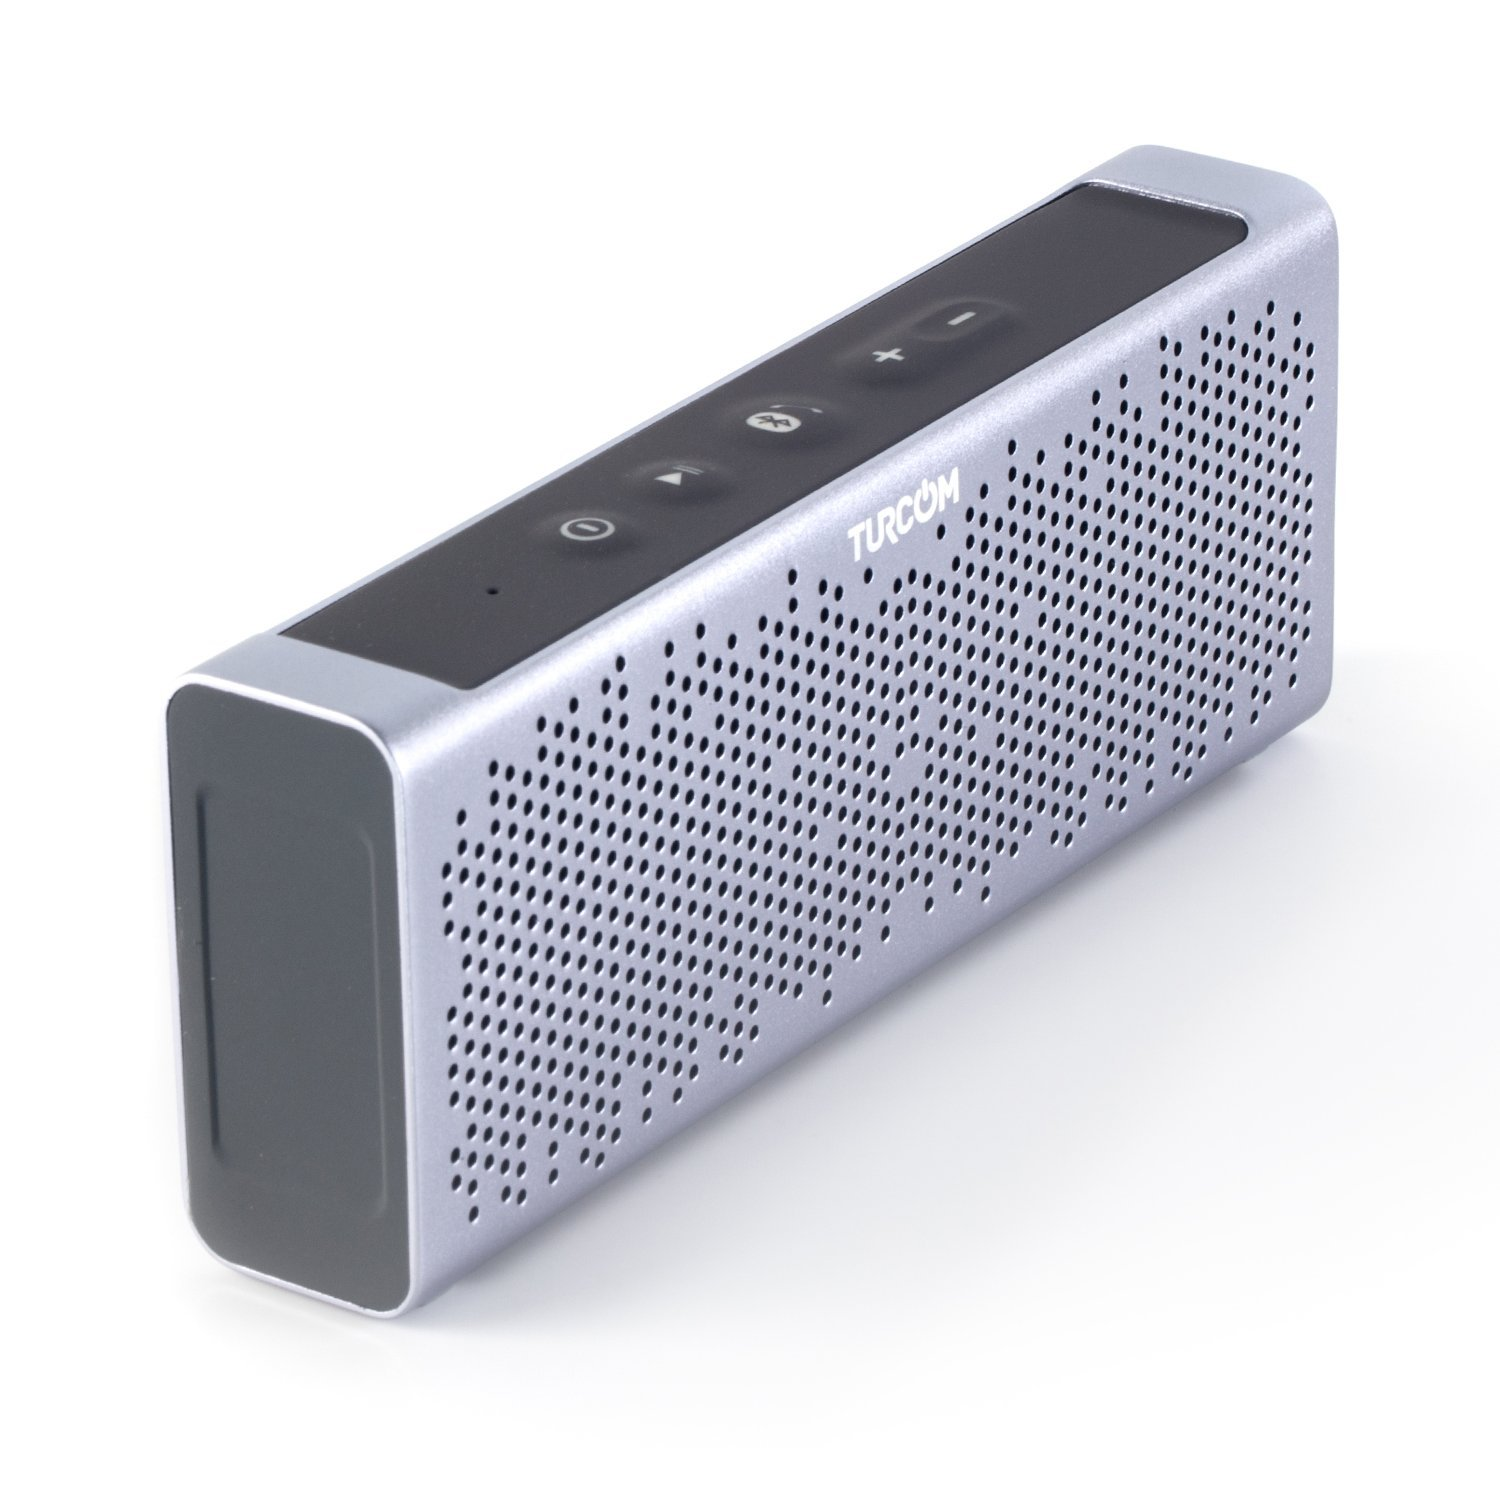 Turcom Titan Bluetooth Speaker Mini Speaker, Dual Speakers 10 Watt